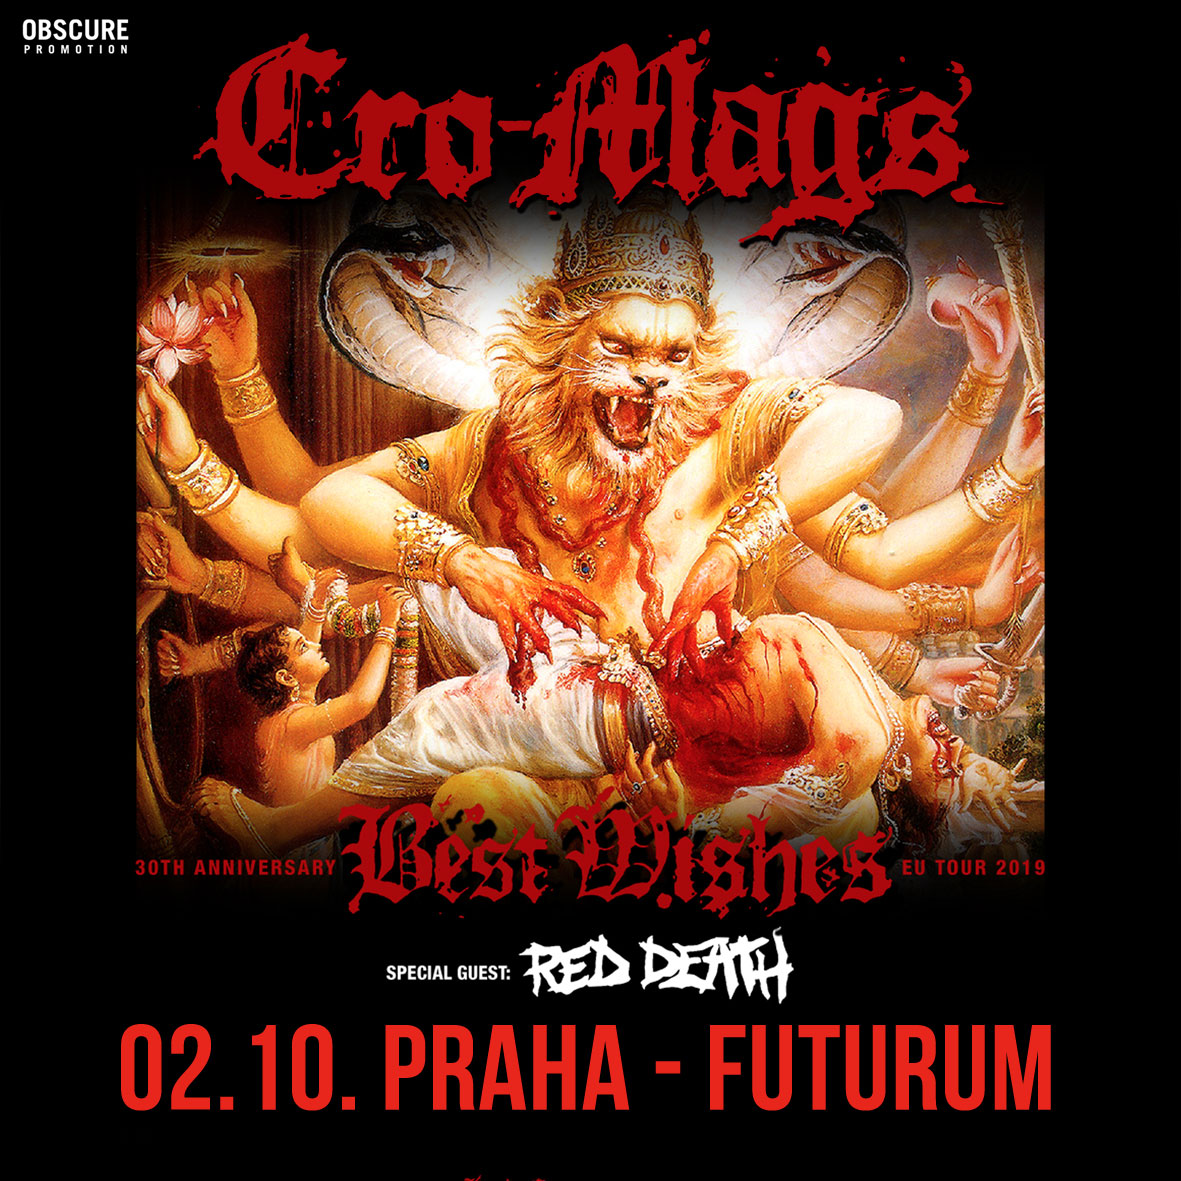 CRO-MAGS (USA) + Red Death (USA)